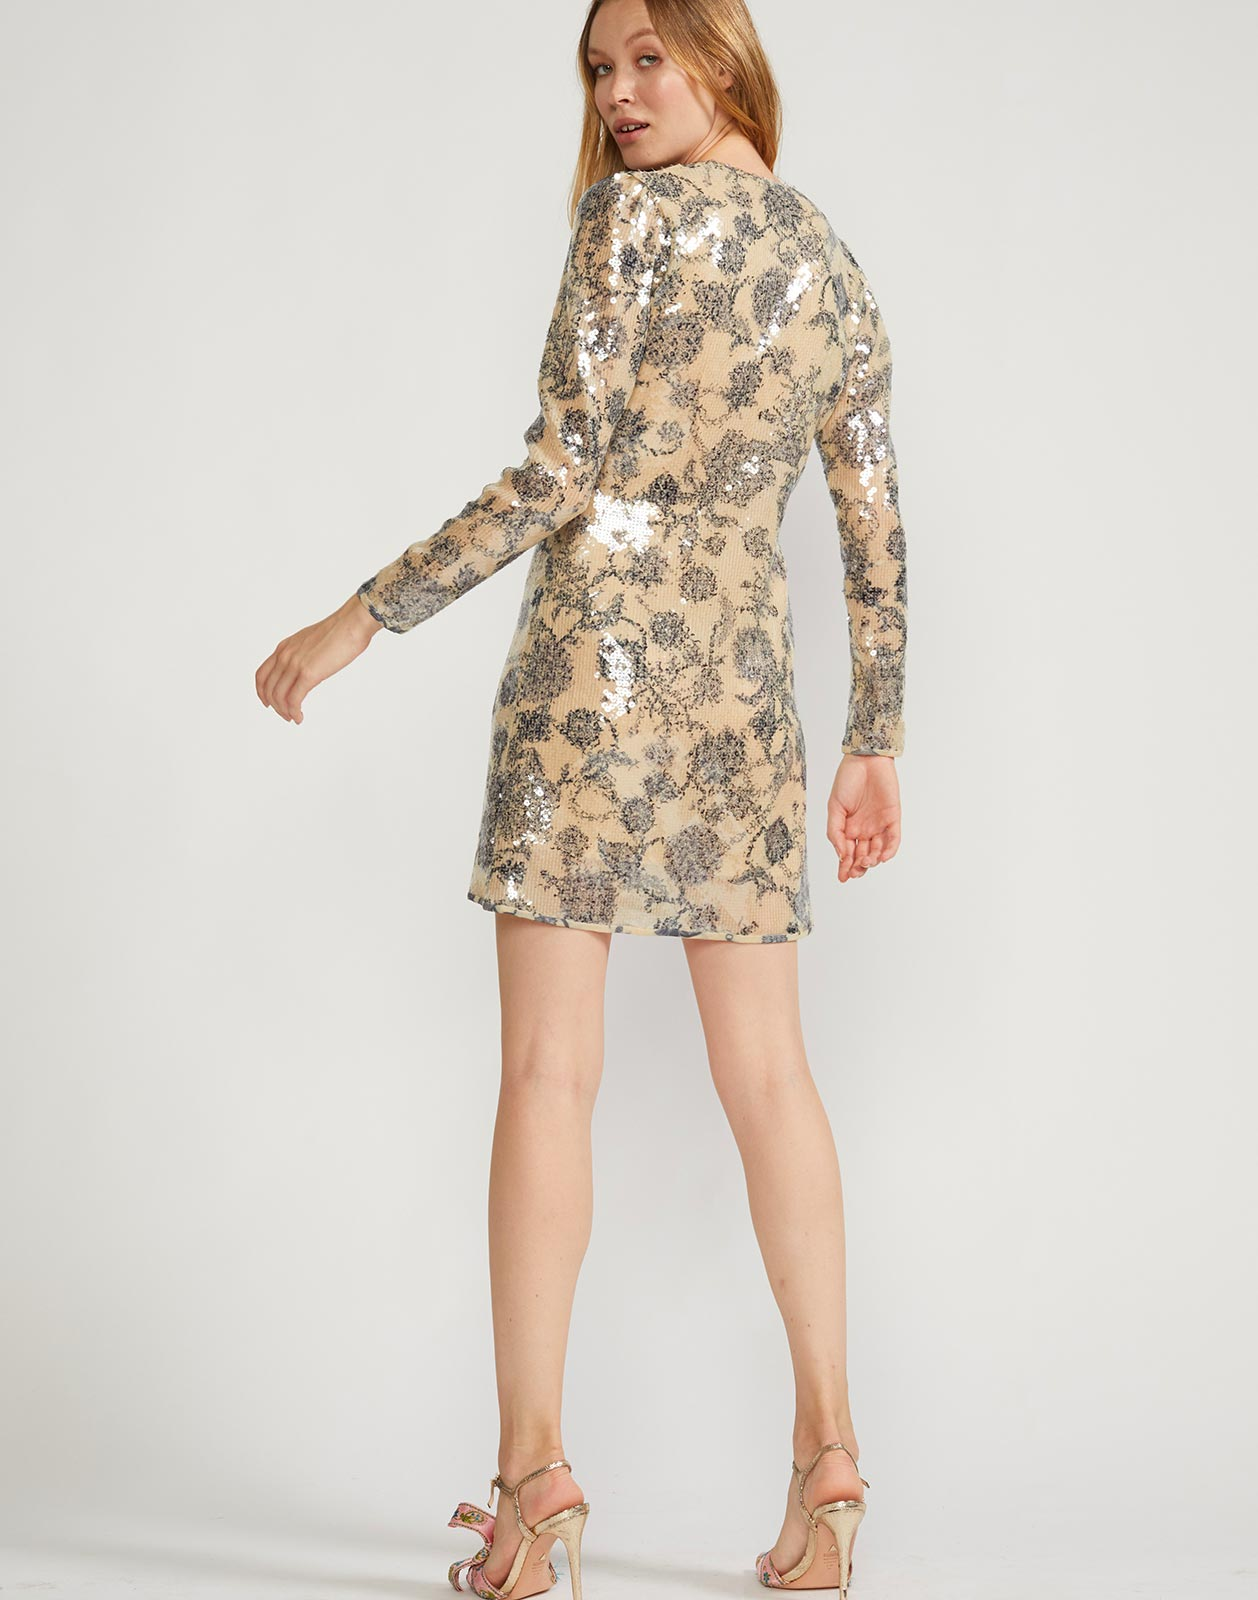 Back view of long sleeved mini dress with sequin embellishment